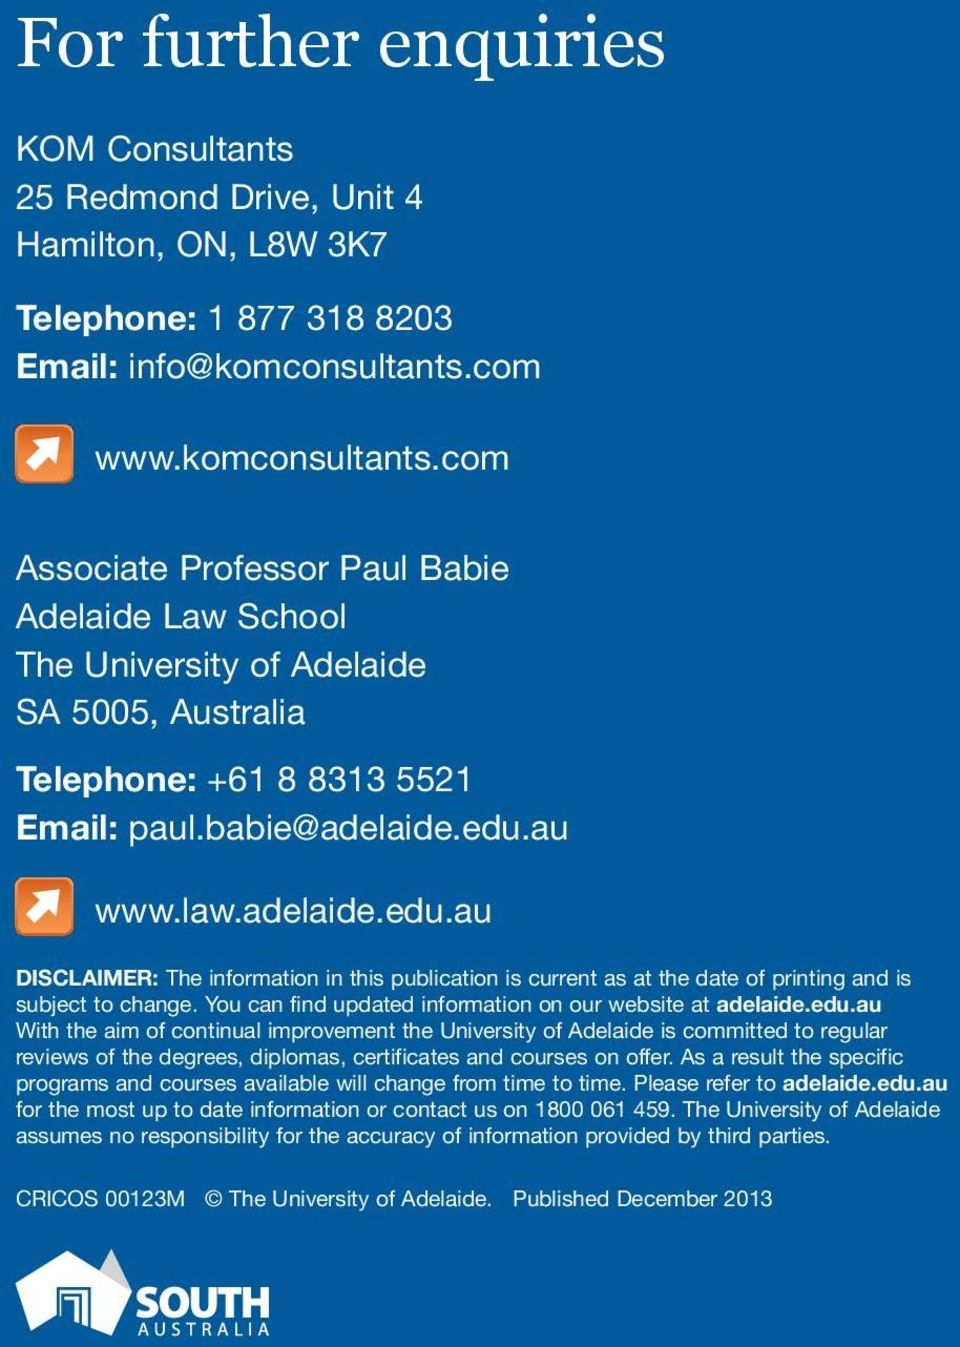 adelaide.edu.au DISCLAIMER: The information in this publication is current as at the date of printing and is subject to change. You can find updated information on our website at adelaide.edu.au With the aim of continual improvement the University of Adelaide is committed to regular reviews of the degrees, diplomas, certificates and courses on offer.